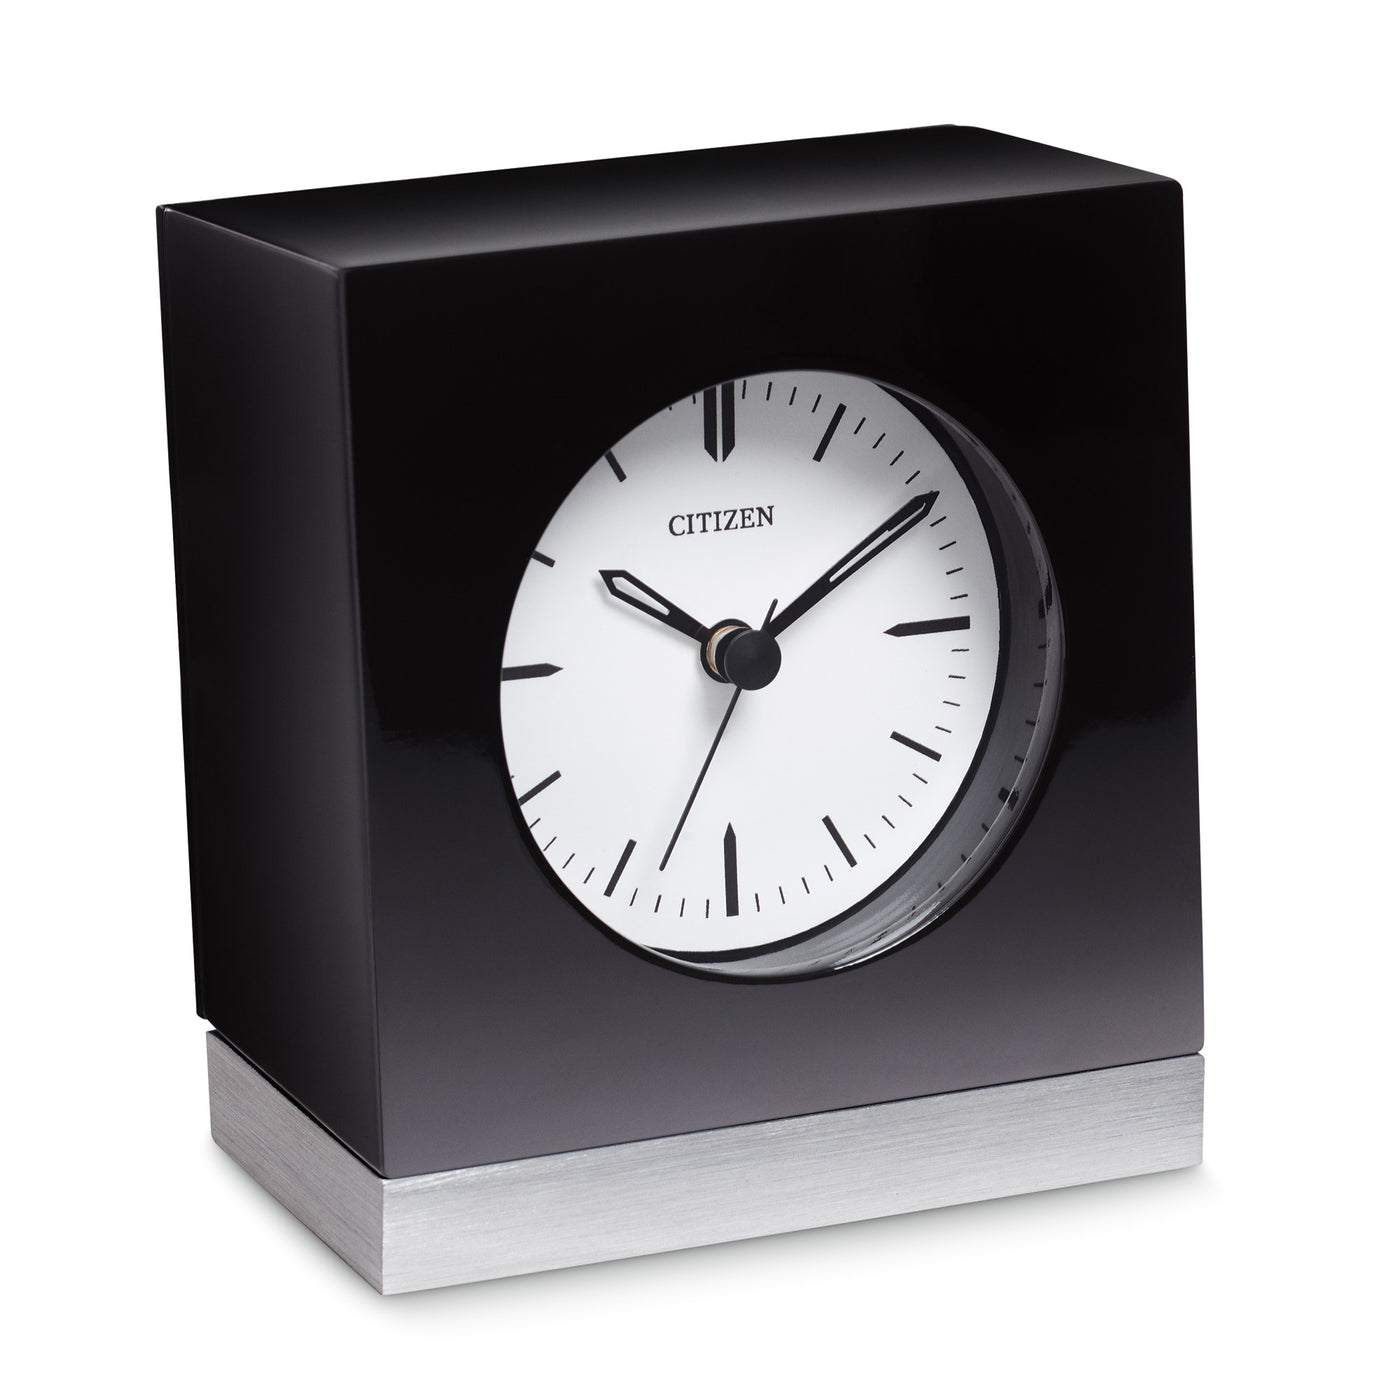 Citizen Workplace Black Square Silver-Tone Base Desk Clock CC1012